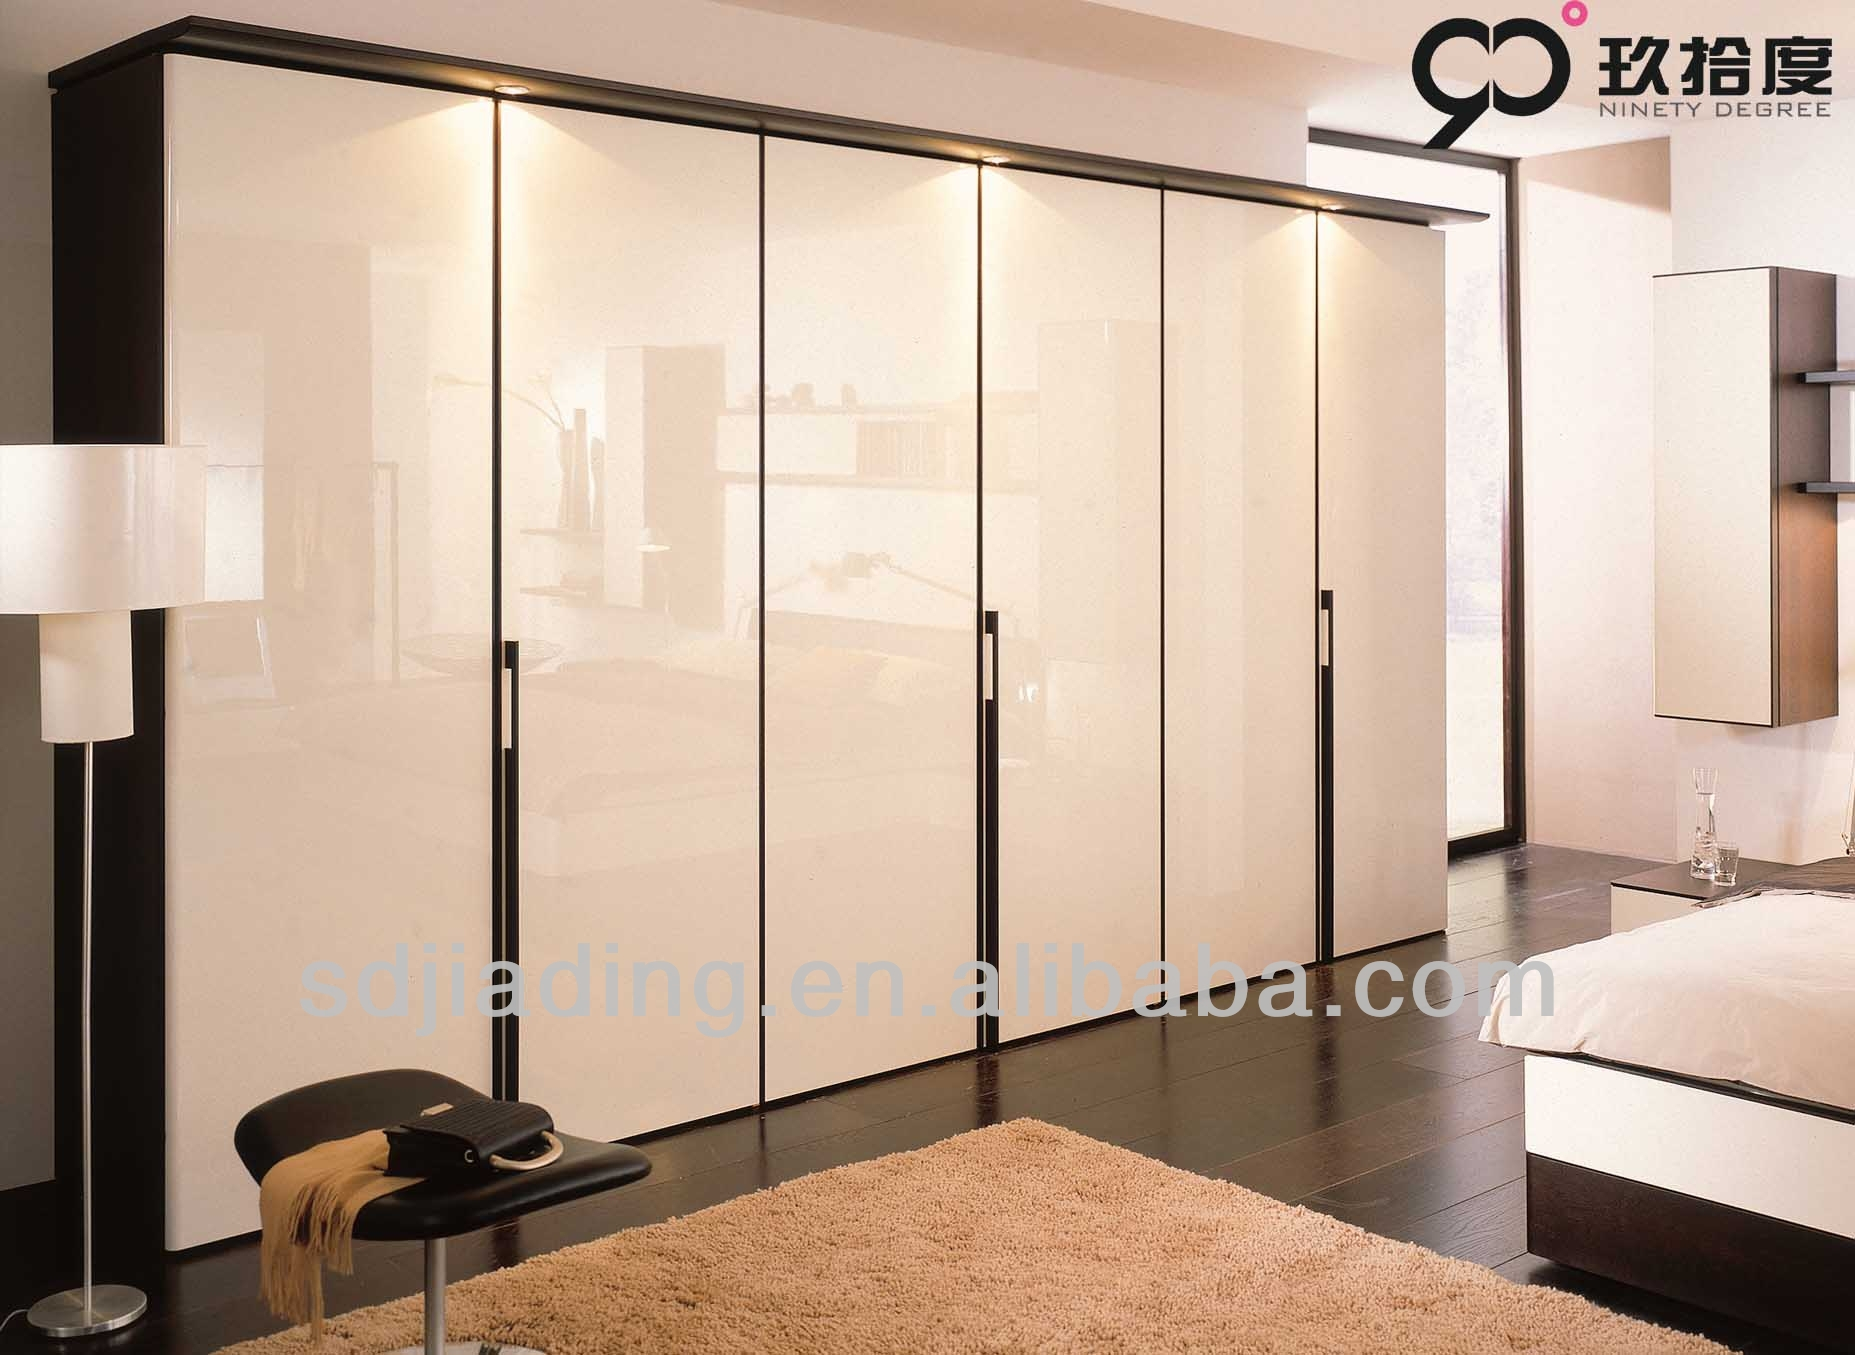 China Wall In Closet  China Wall In Closet Manufacturers and Suppliers on  Alibaba com. China Wall In Closet  China Wall In Closet Manufacturers and